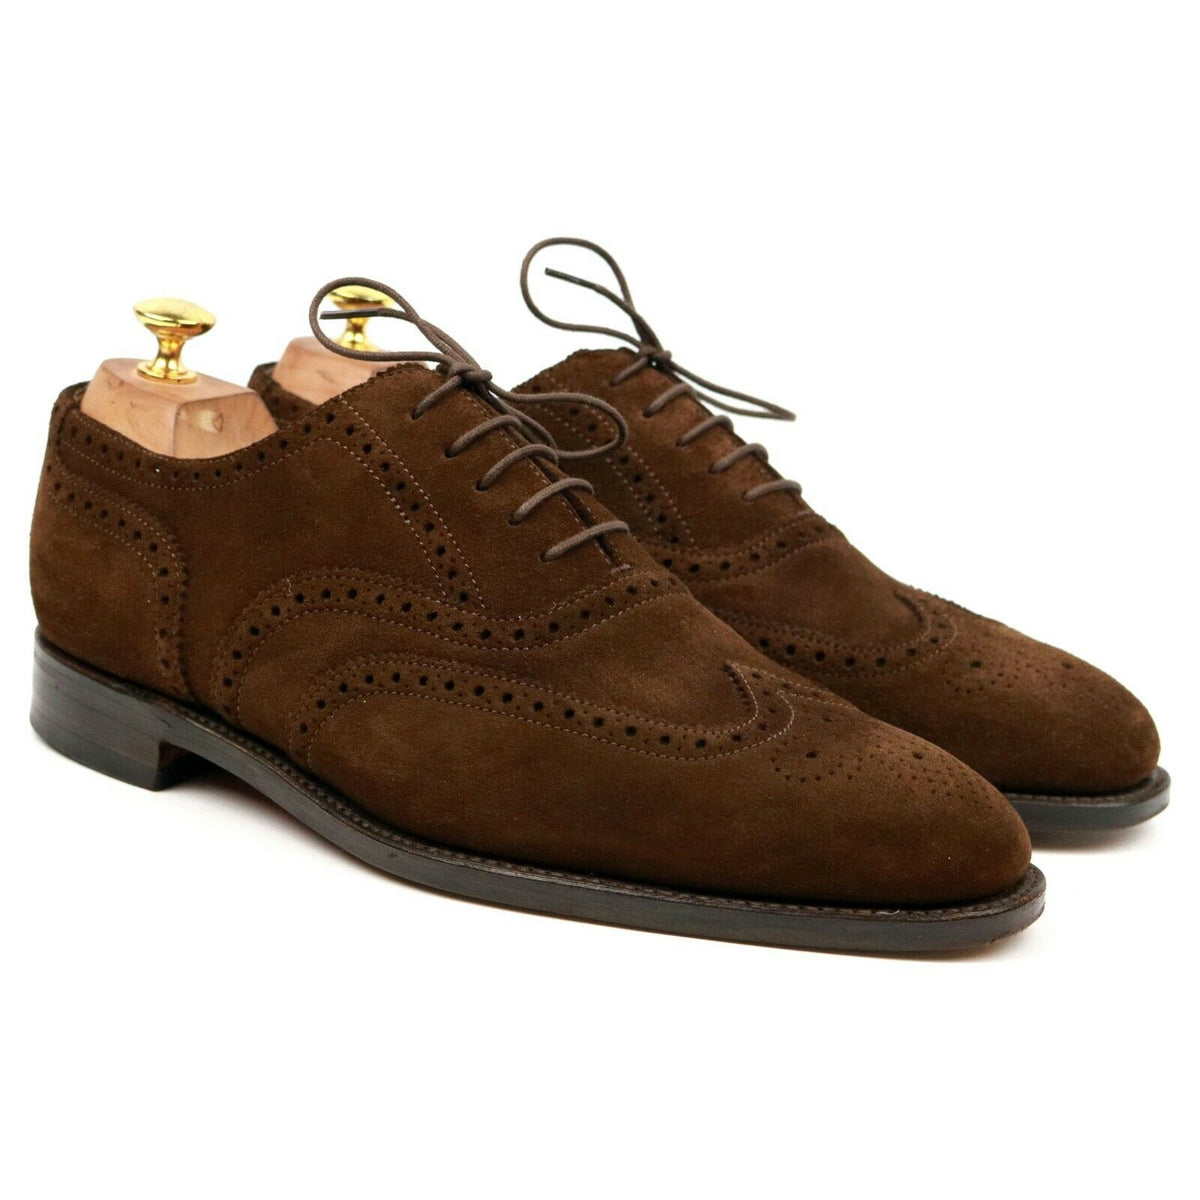 Loake Brown Suede Brogues UK 9 F